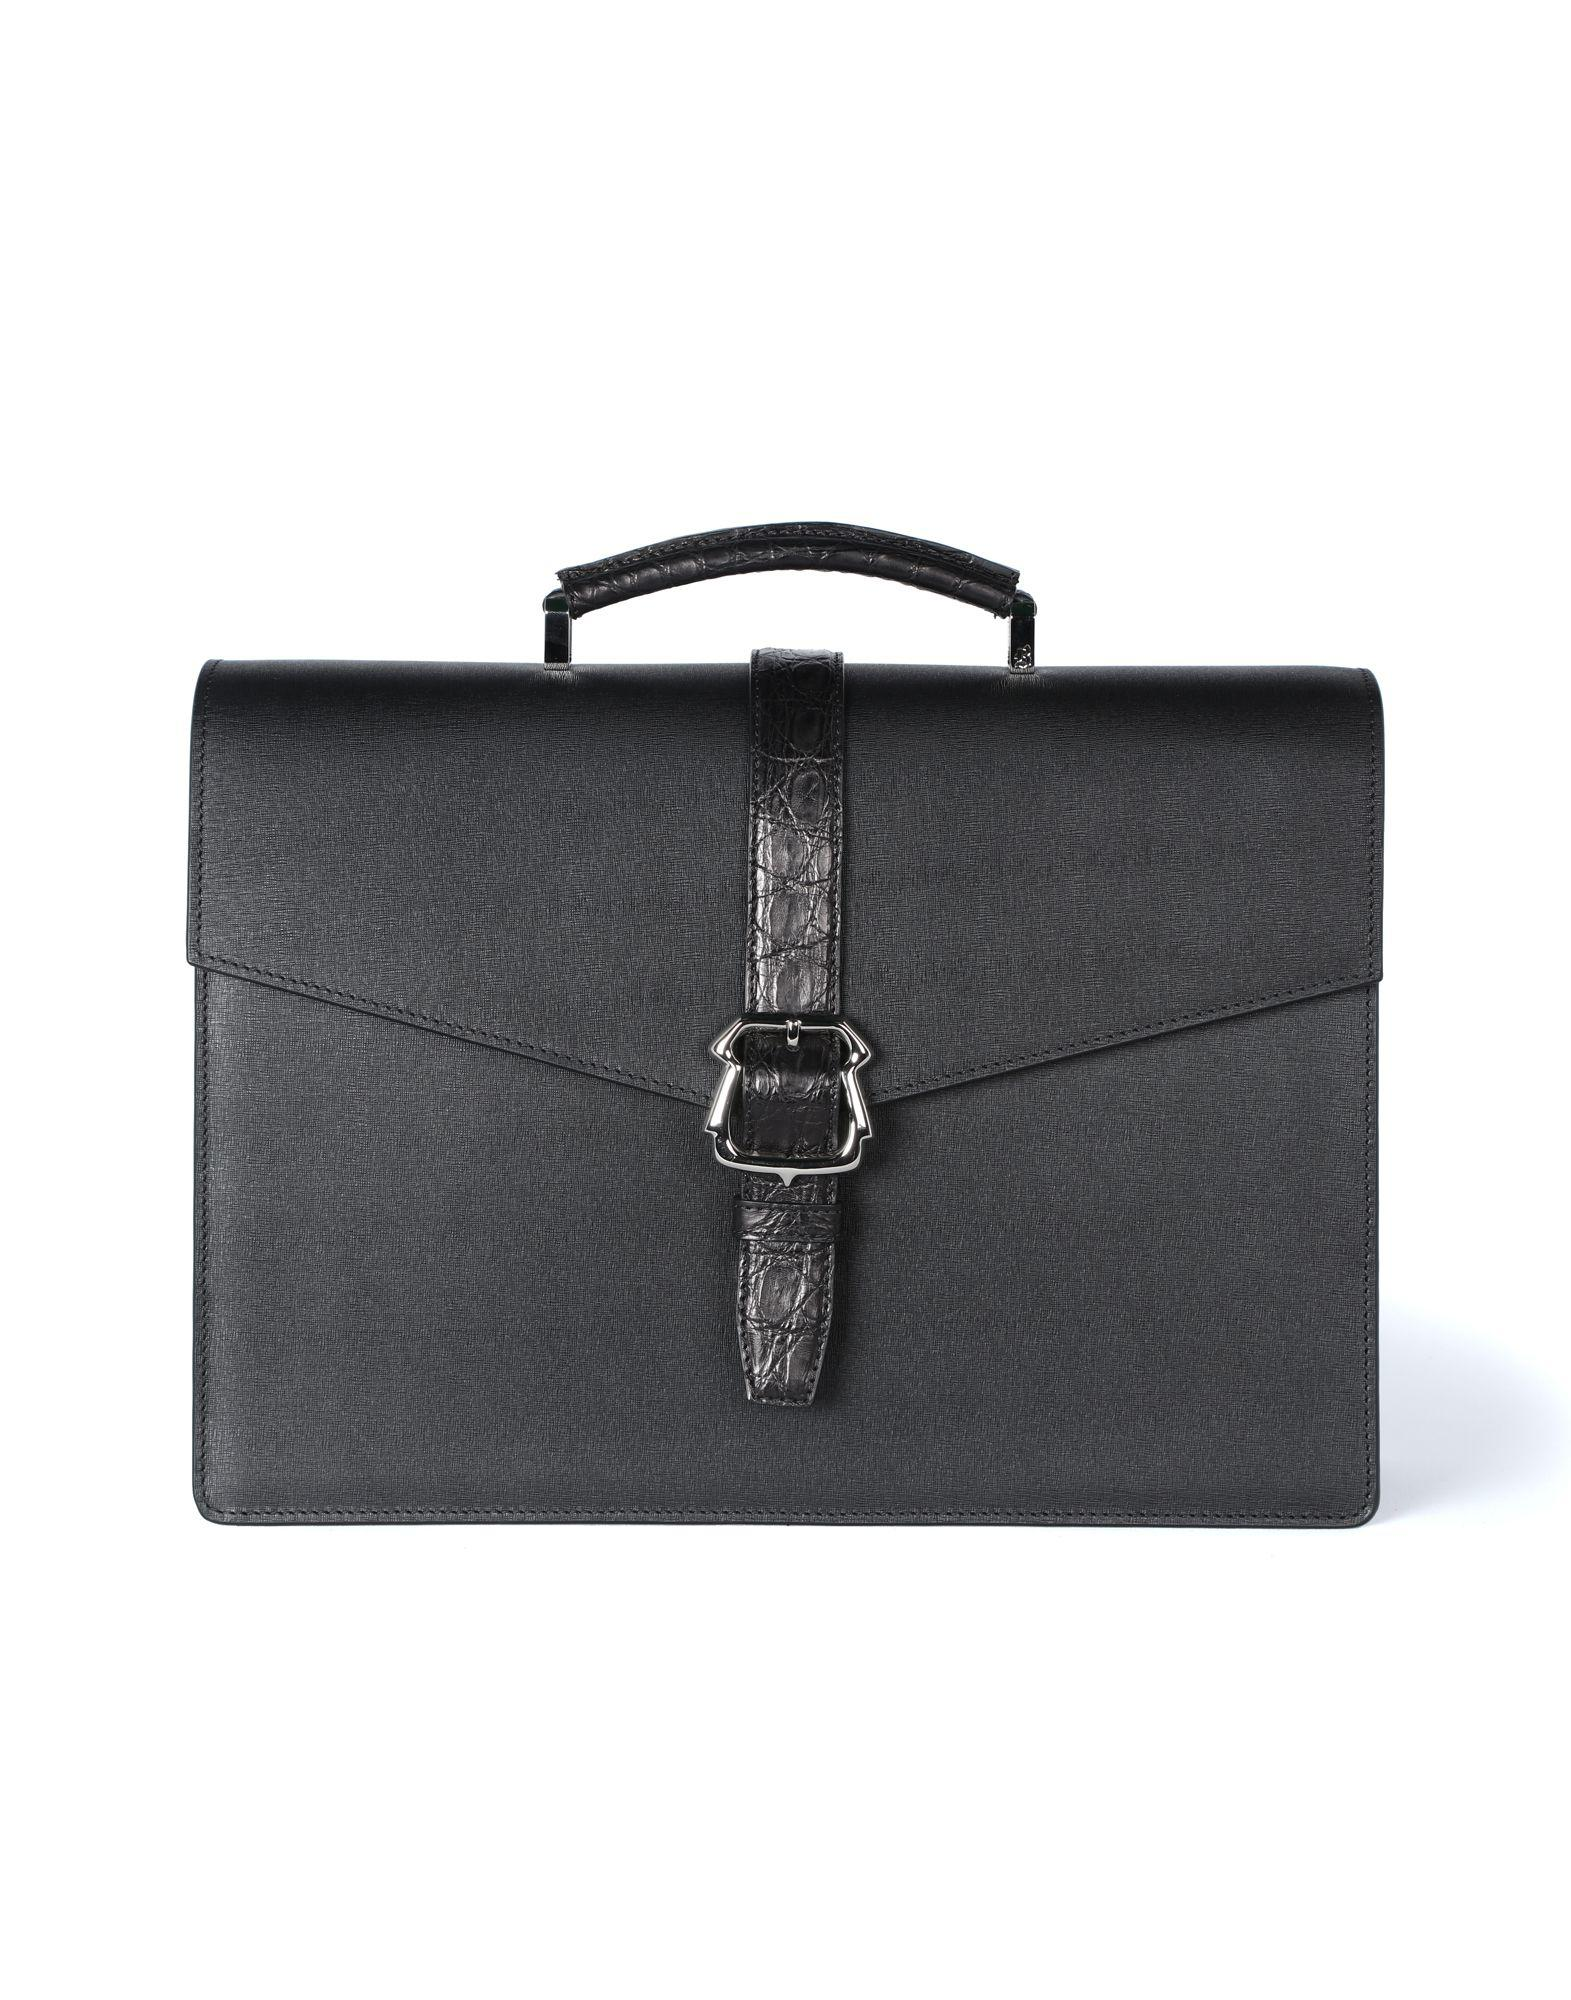 e3dfec7ea56d Brioni Calfskin Briefcase With Buckle in Black for Men - Lyst